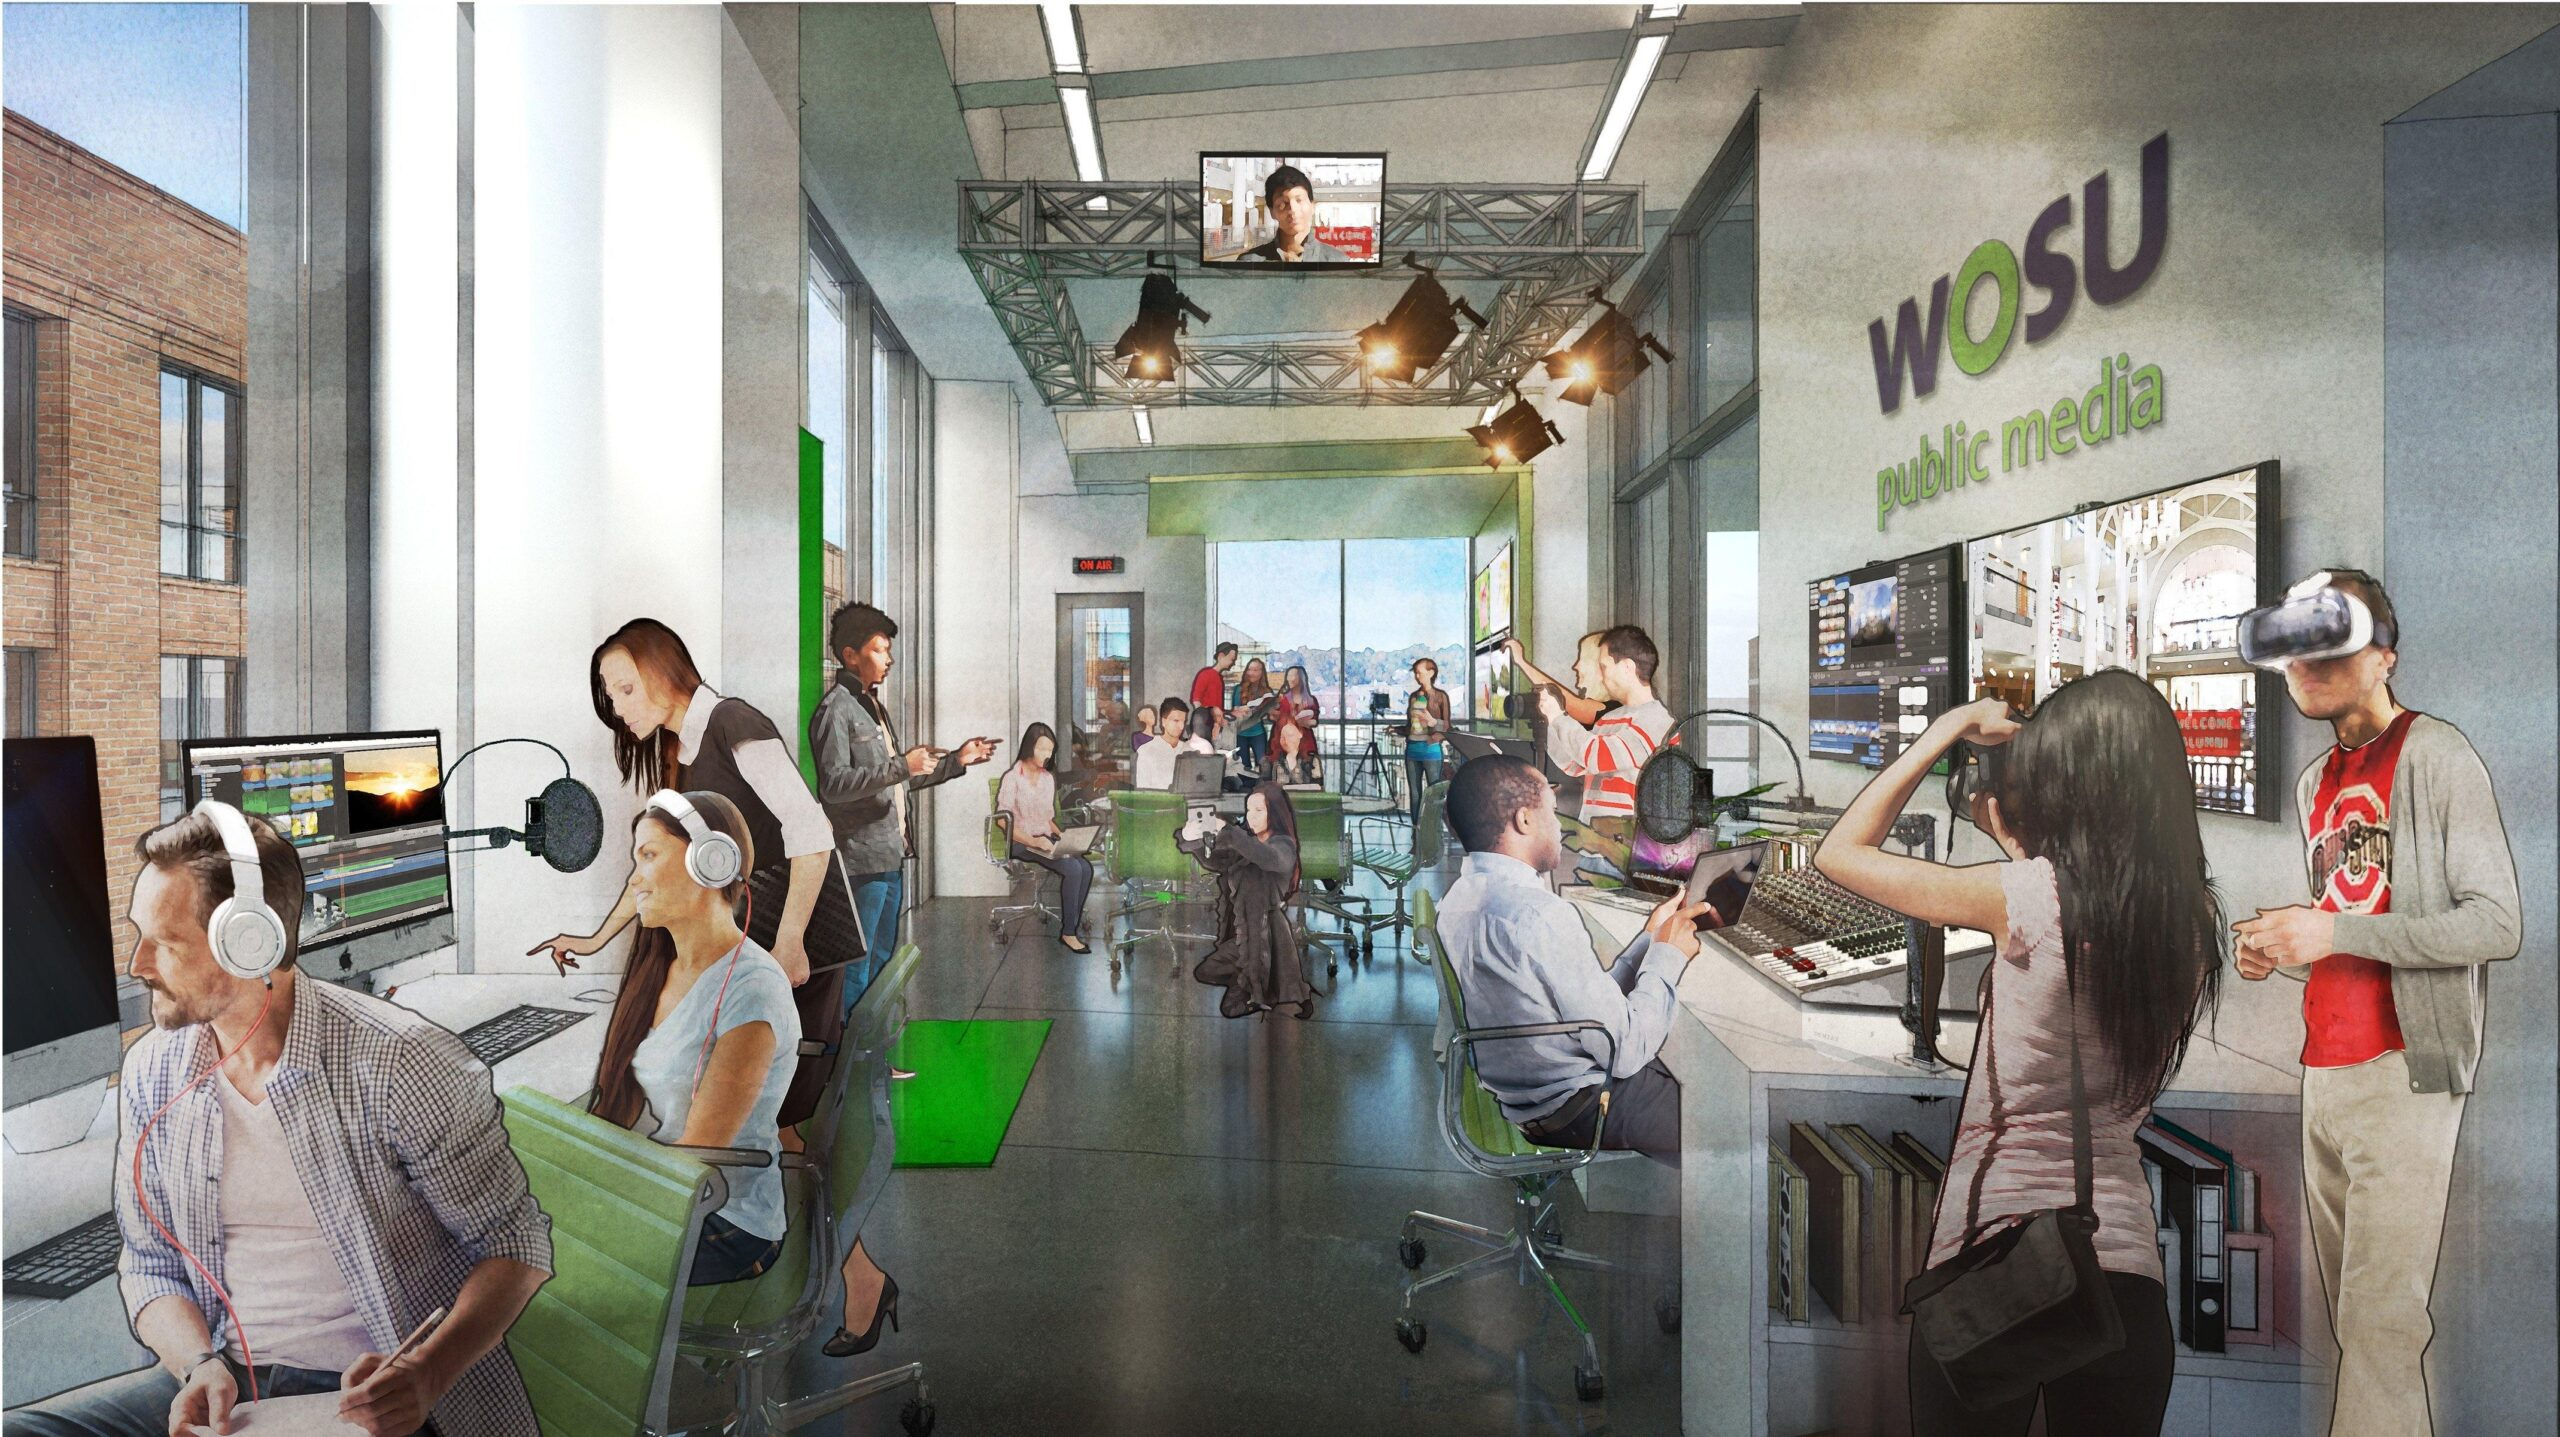 Concept image of students utilizing WOSU's new facilities